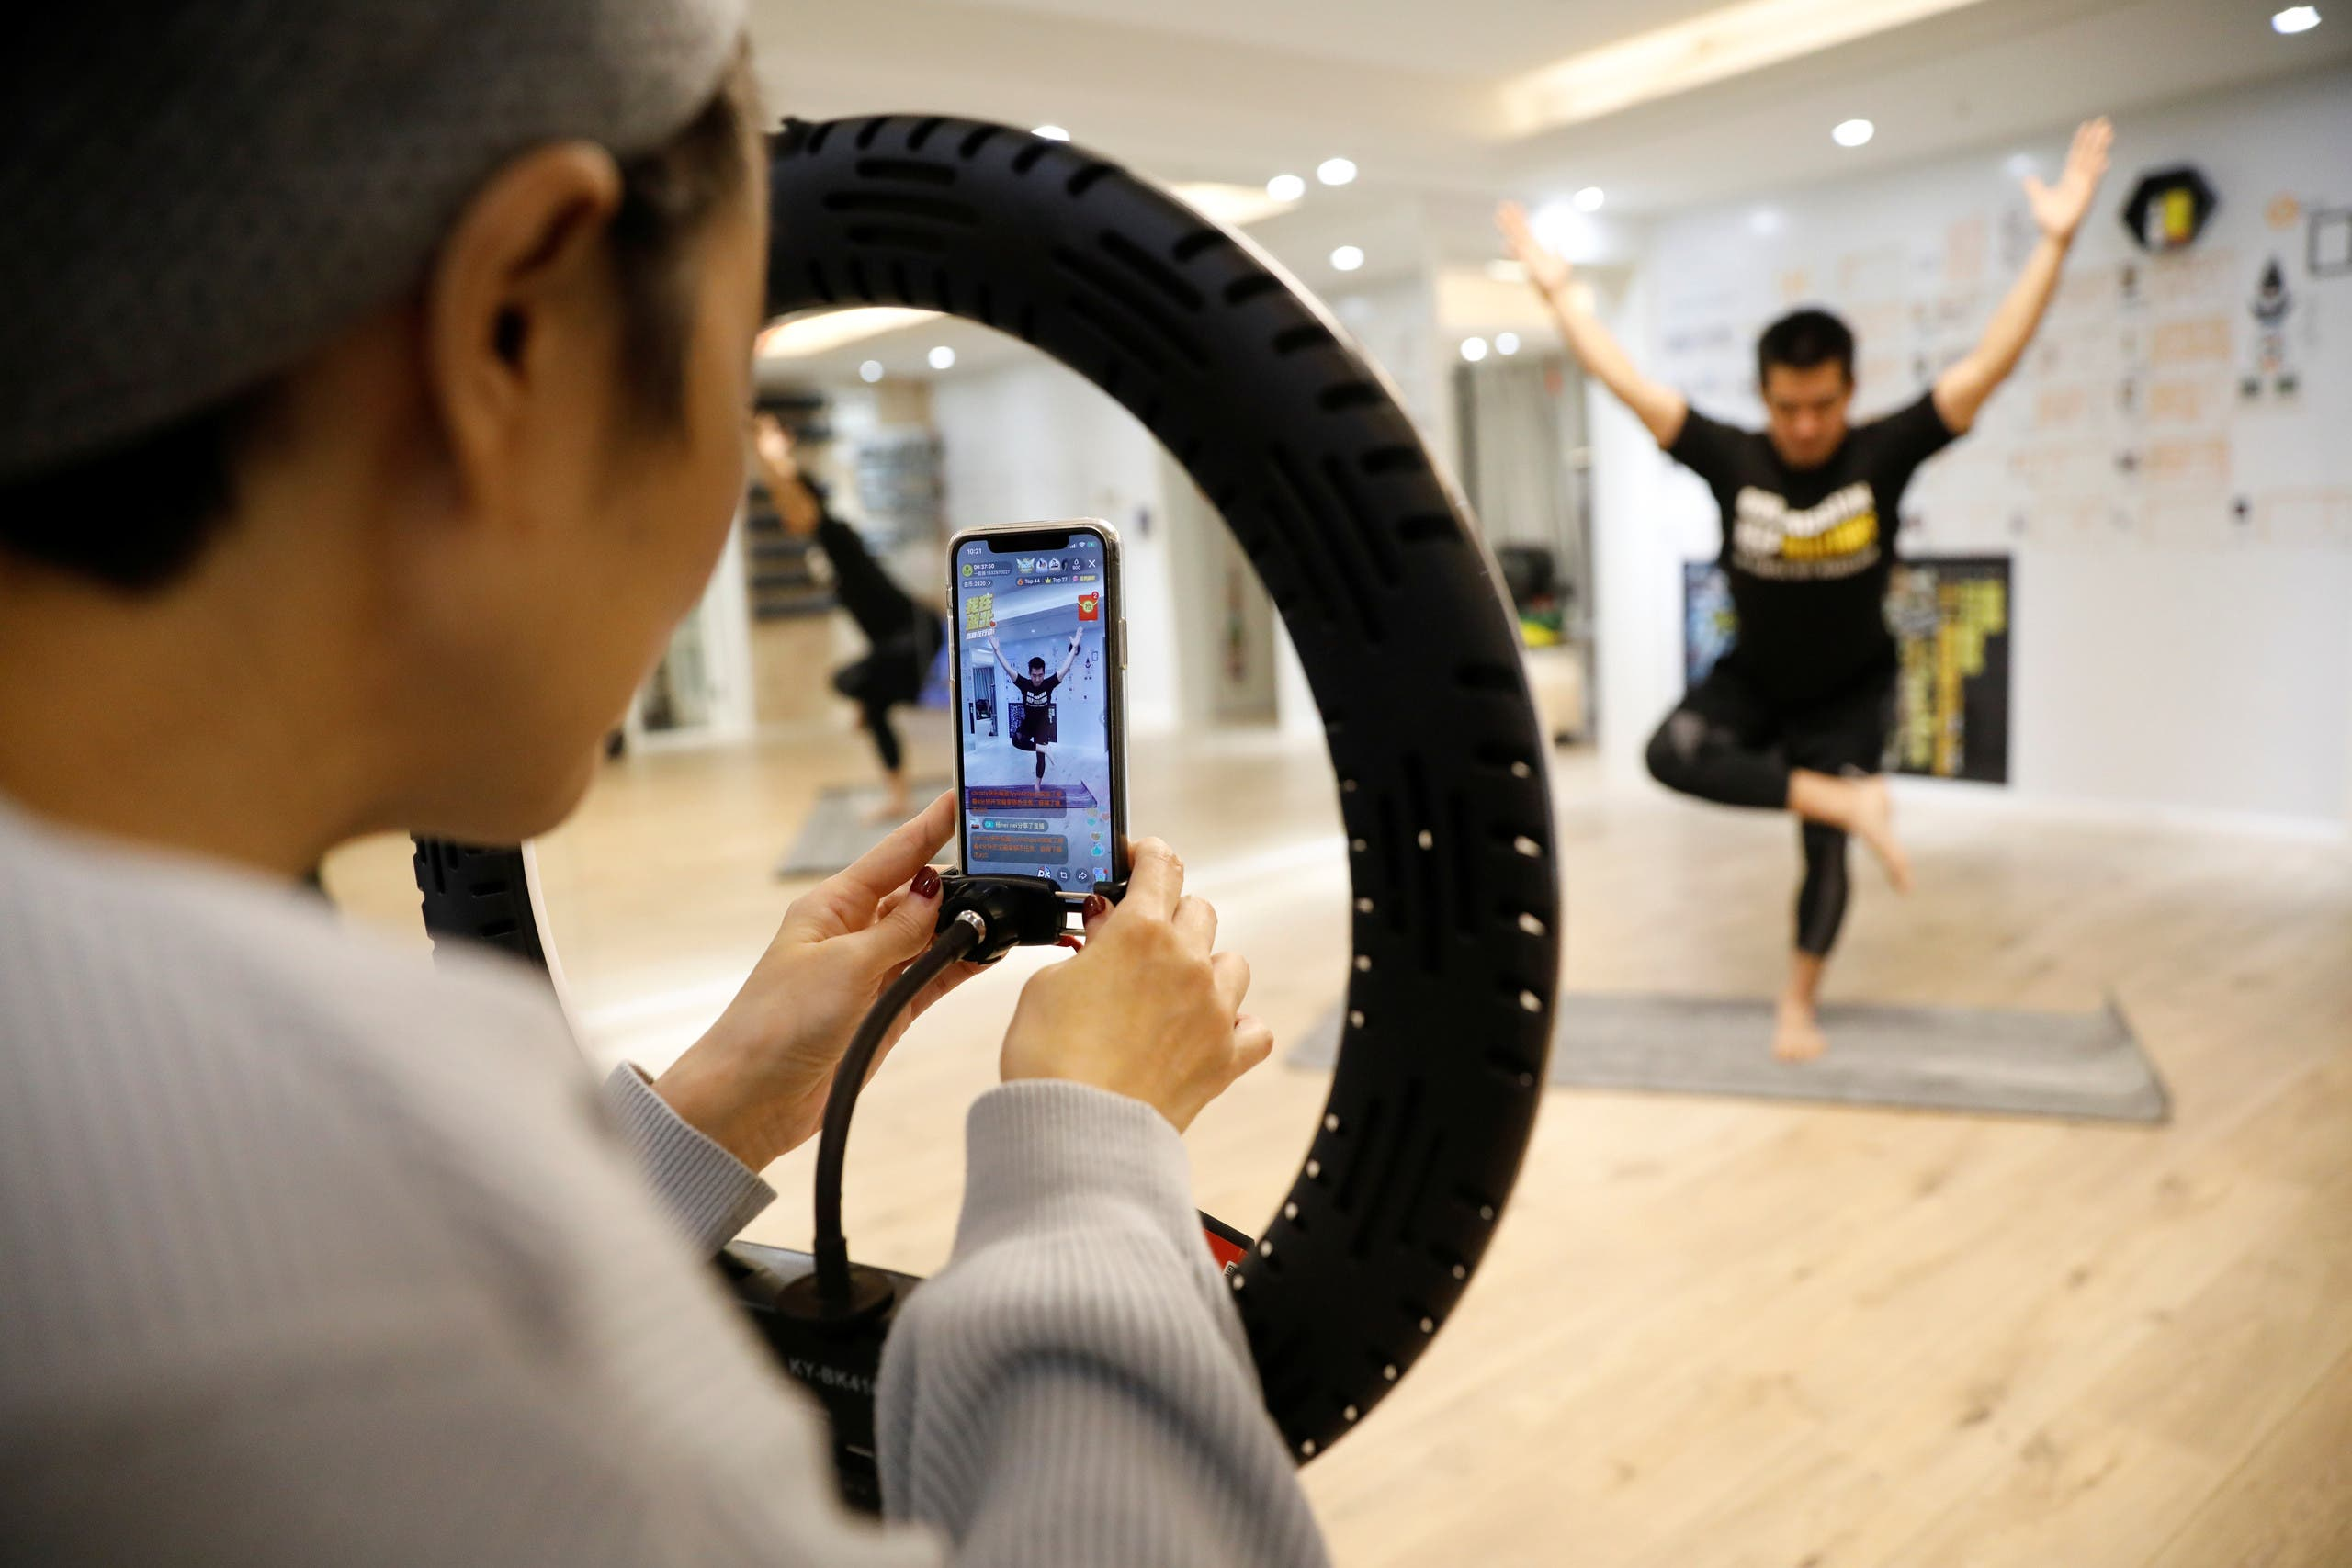 Liu Xiaojin, sets a phone as she gets ready to livestream a gym class, as the country is hit by an outbreak of the new coronavirus, in Beijing. (Reuters)